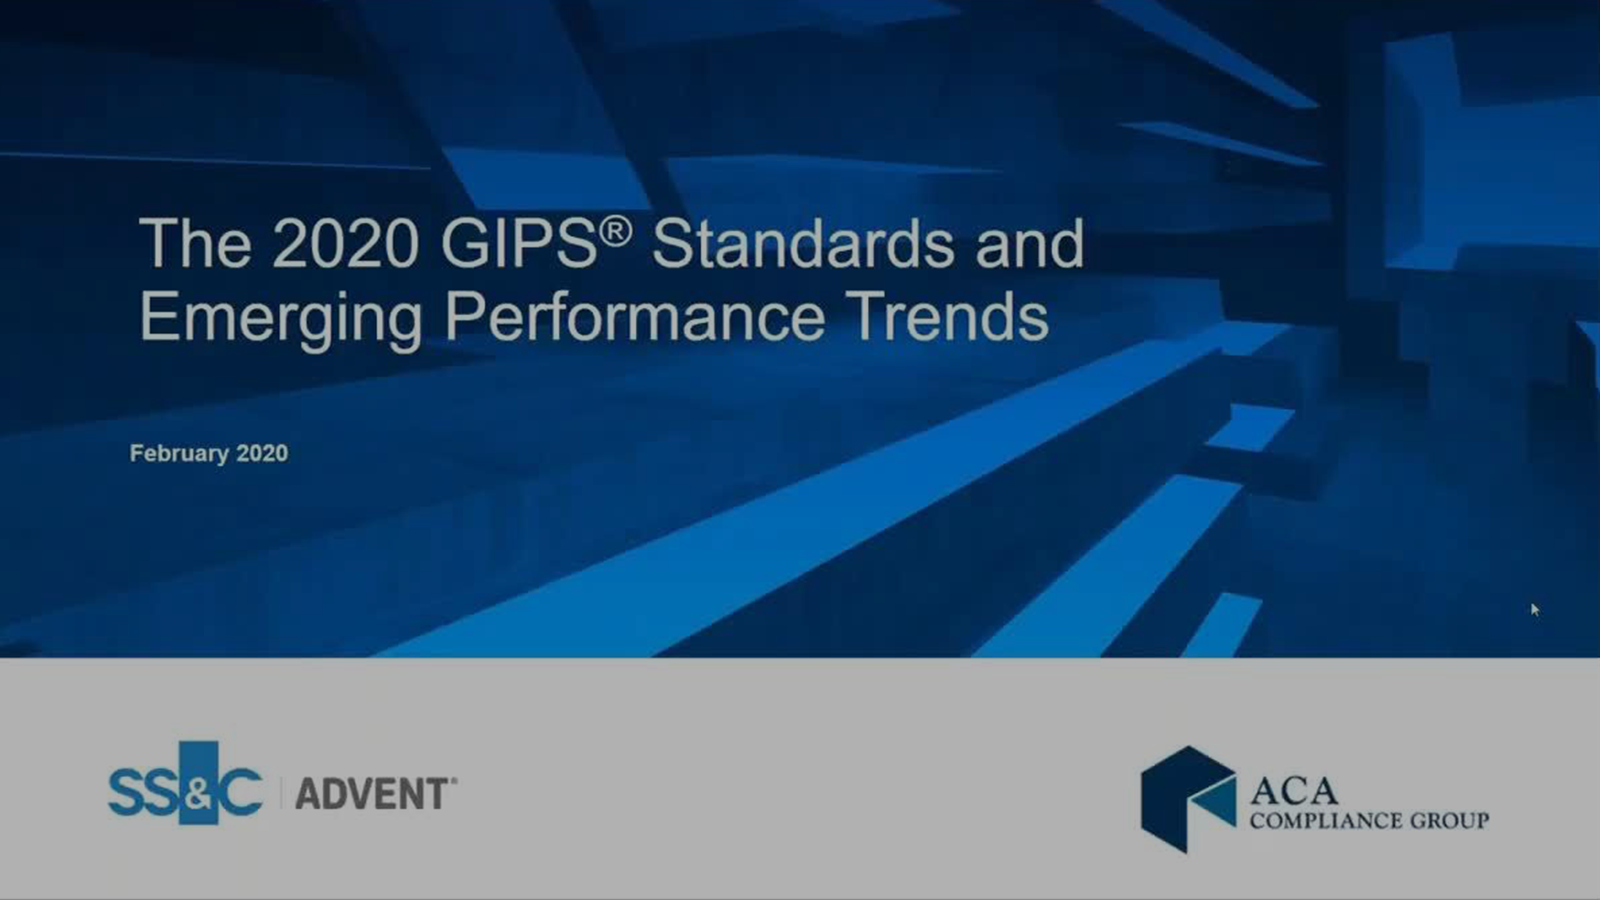 poster image for 2020 GIPS Standards and Emerging Performance Trends